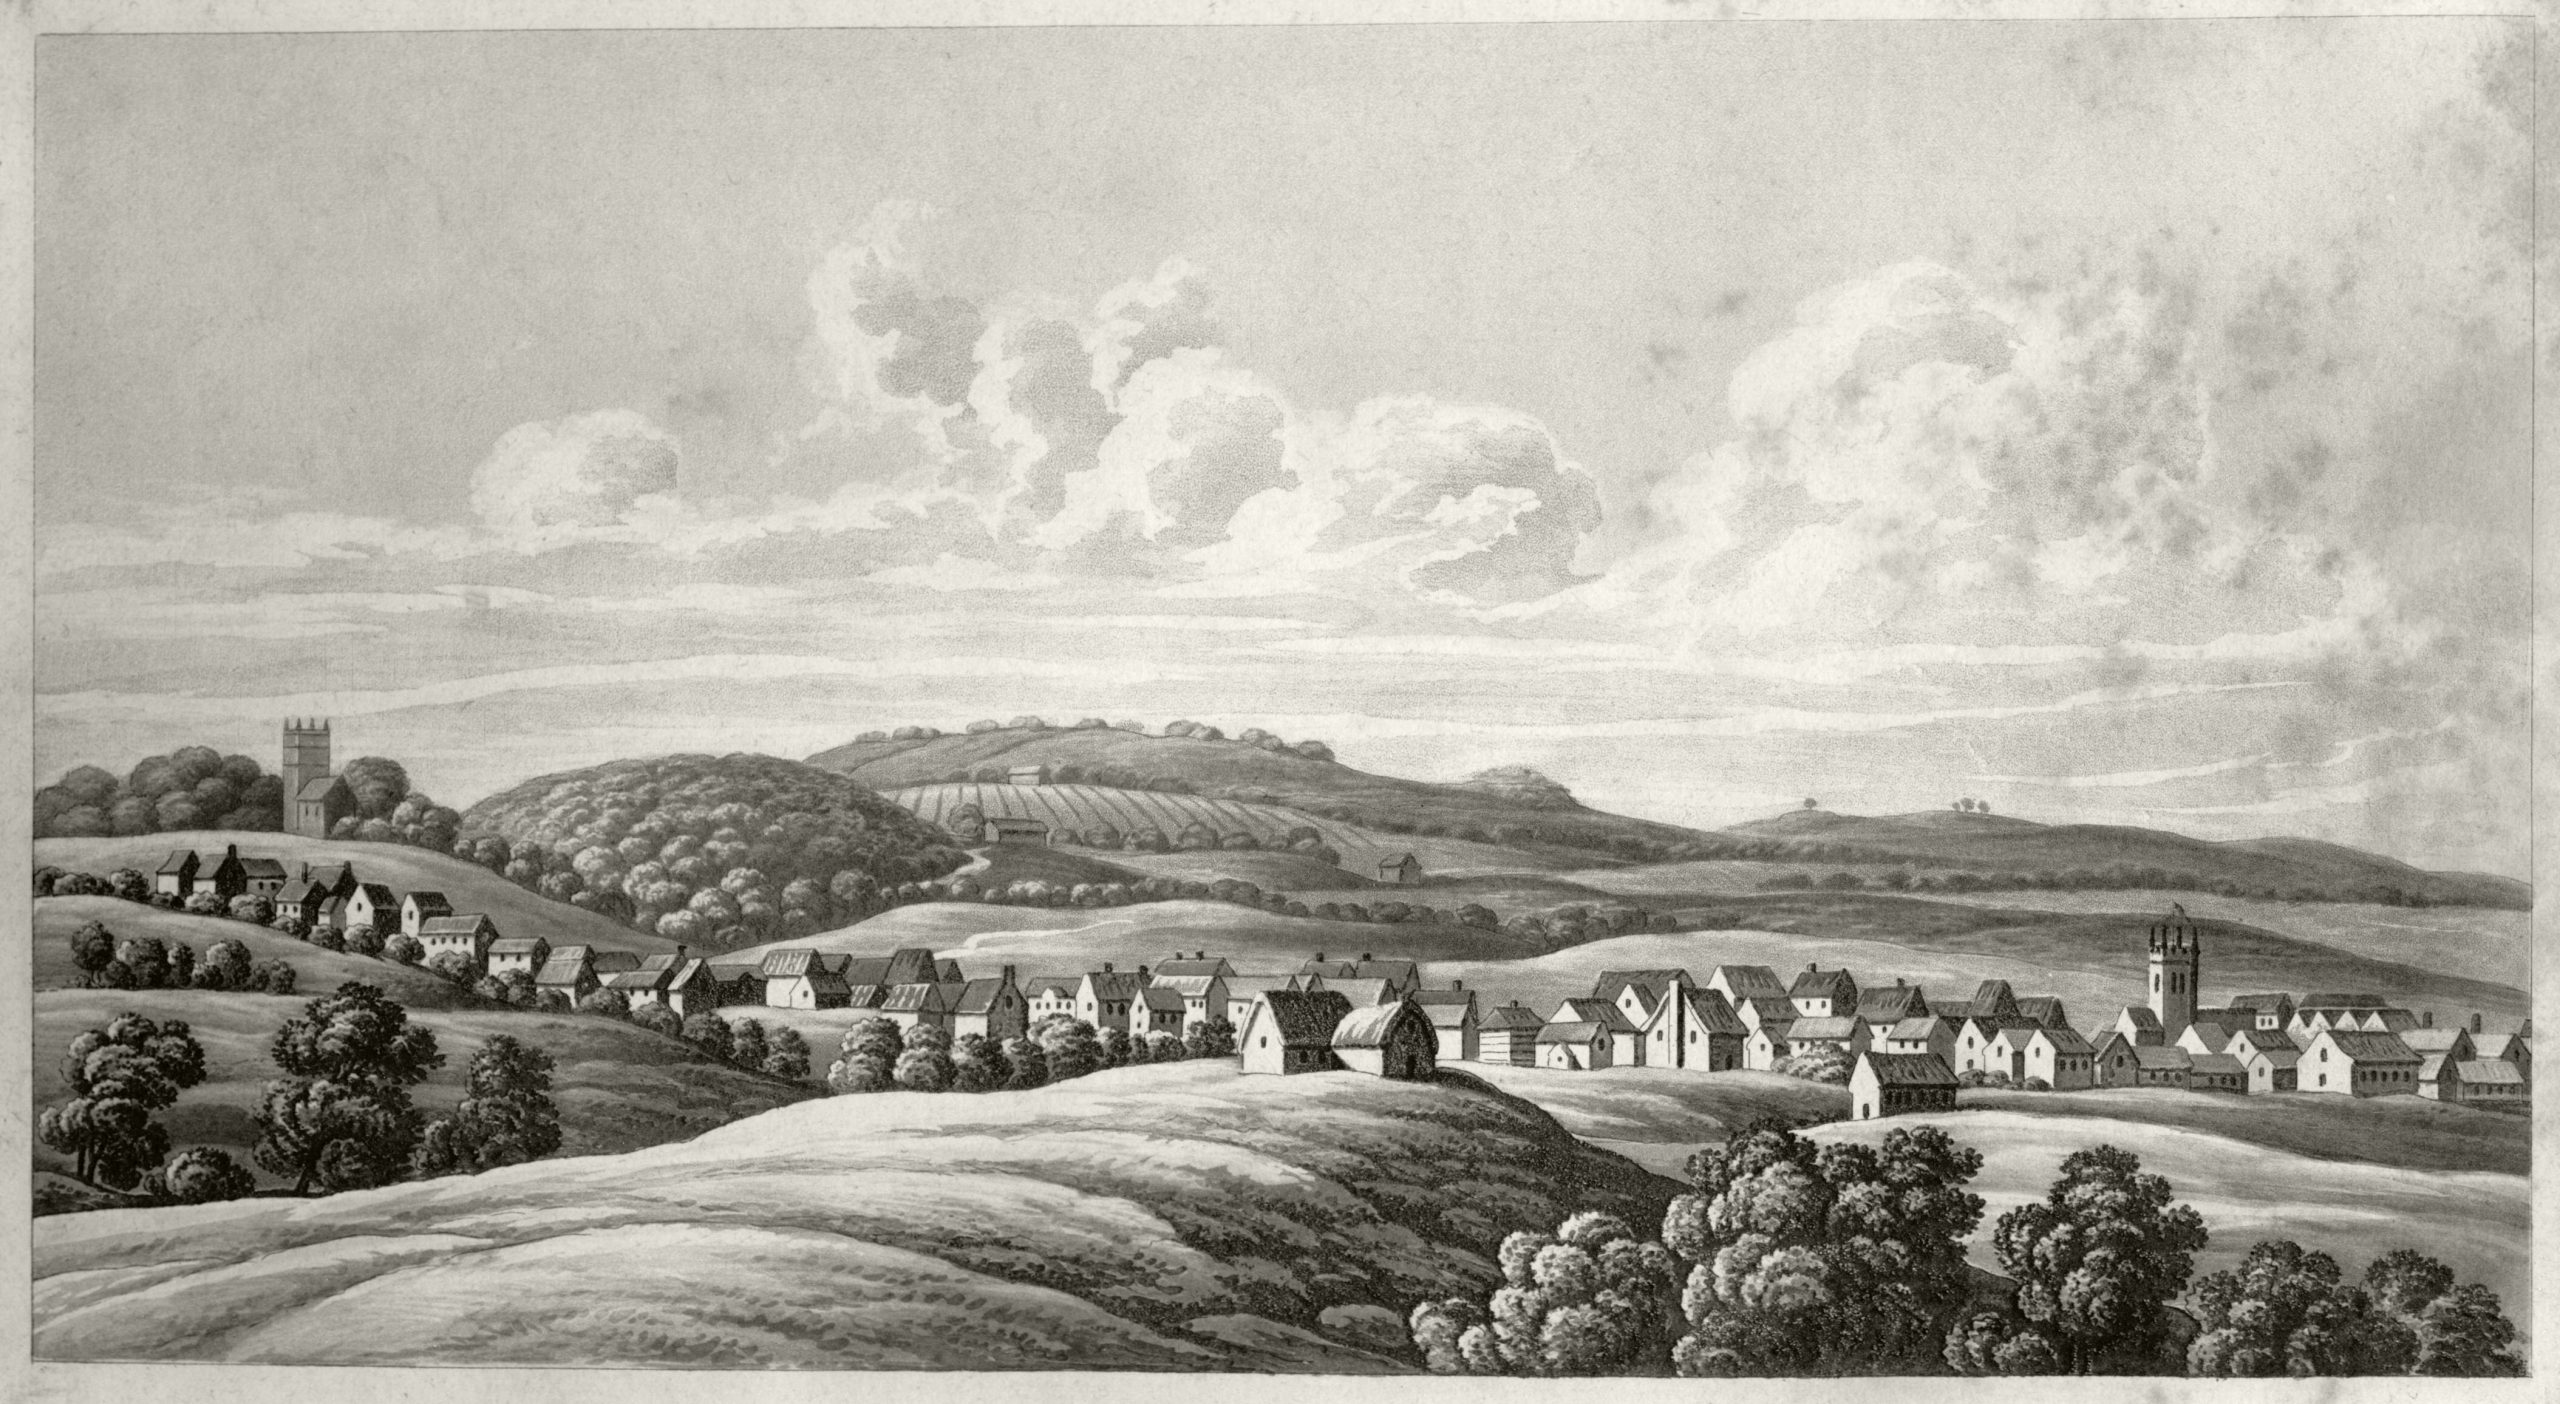 Okehampton 1669 (1821 print). Image courtesy of the Museum of Dartmoor Life.